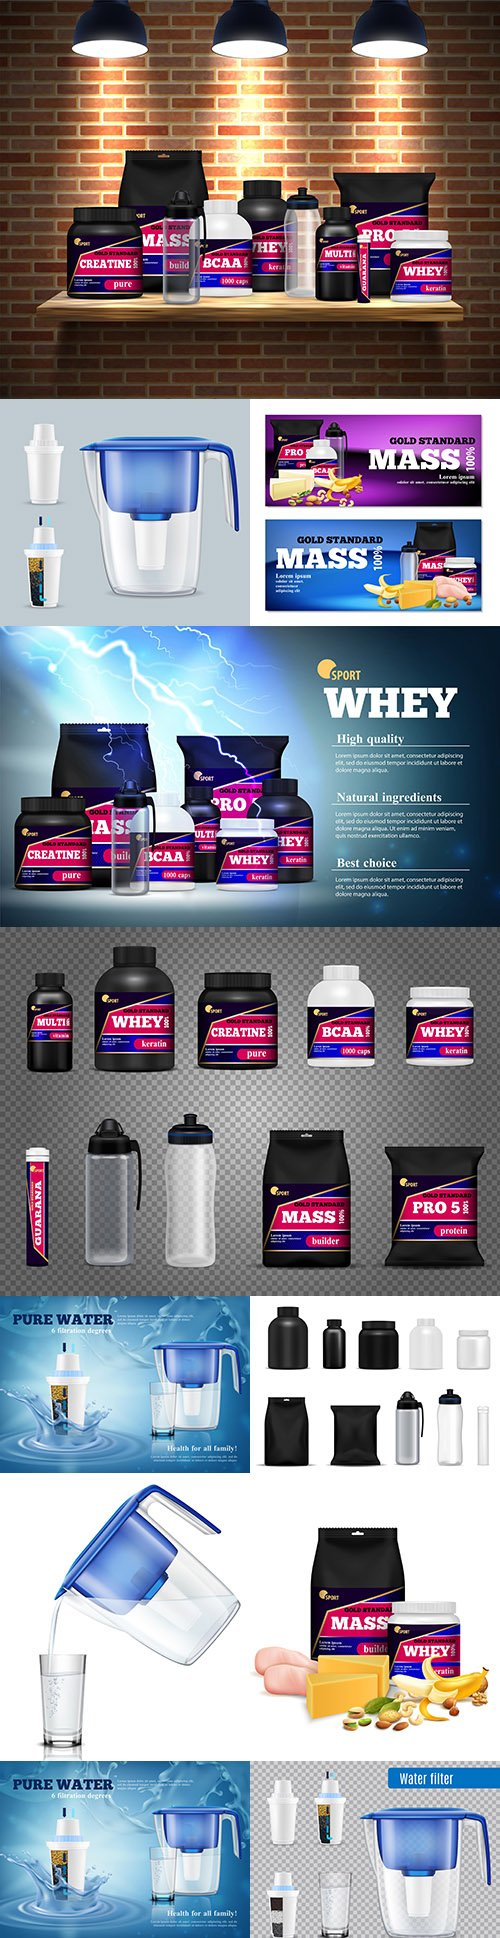 Fitness, sports food and filit for water realistic illustrations